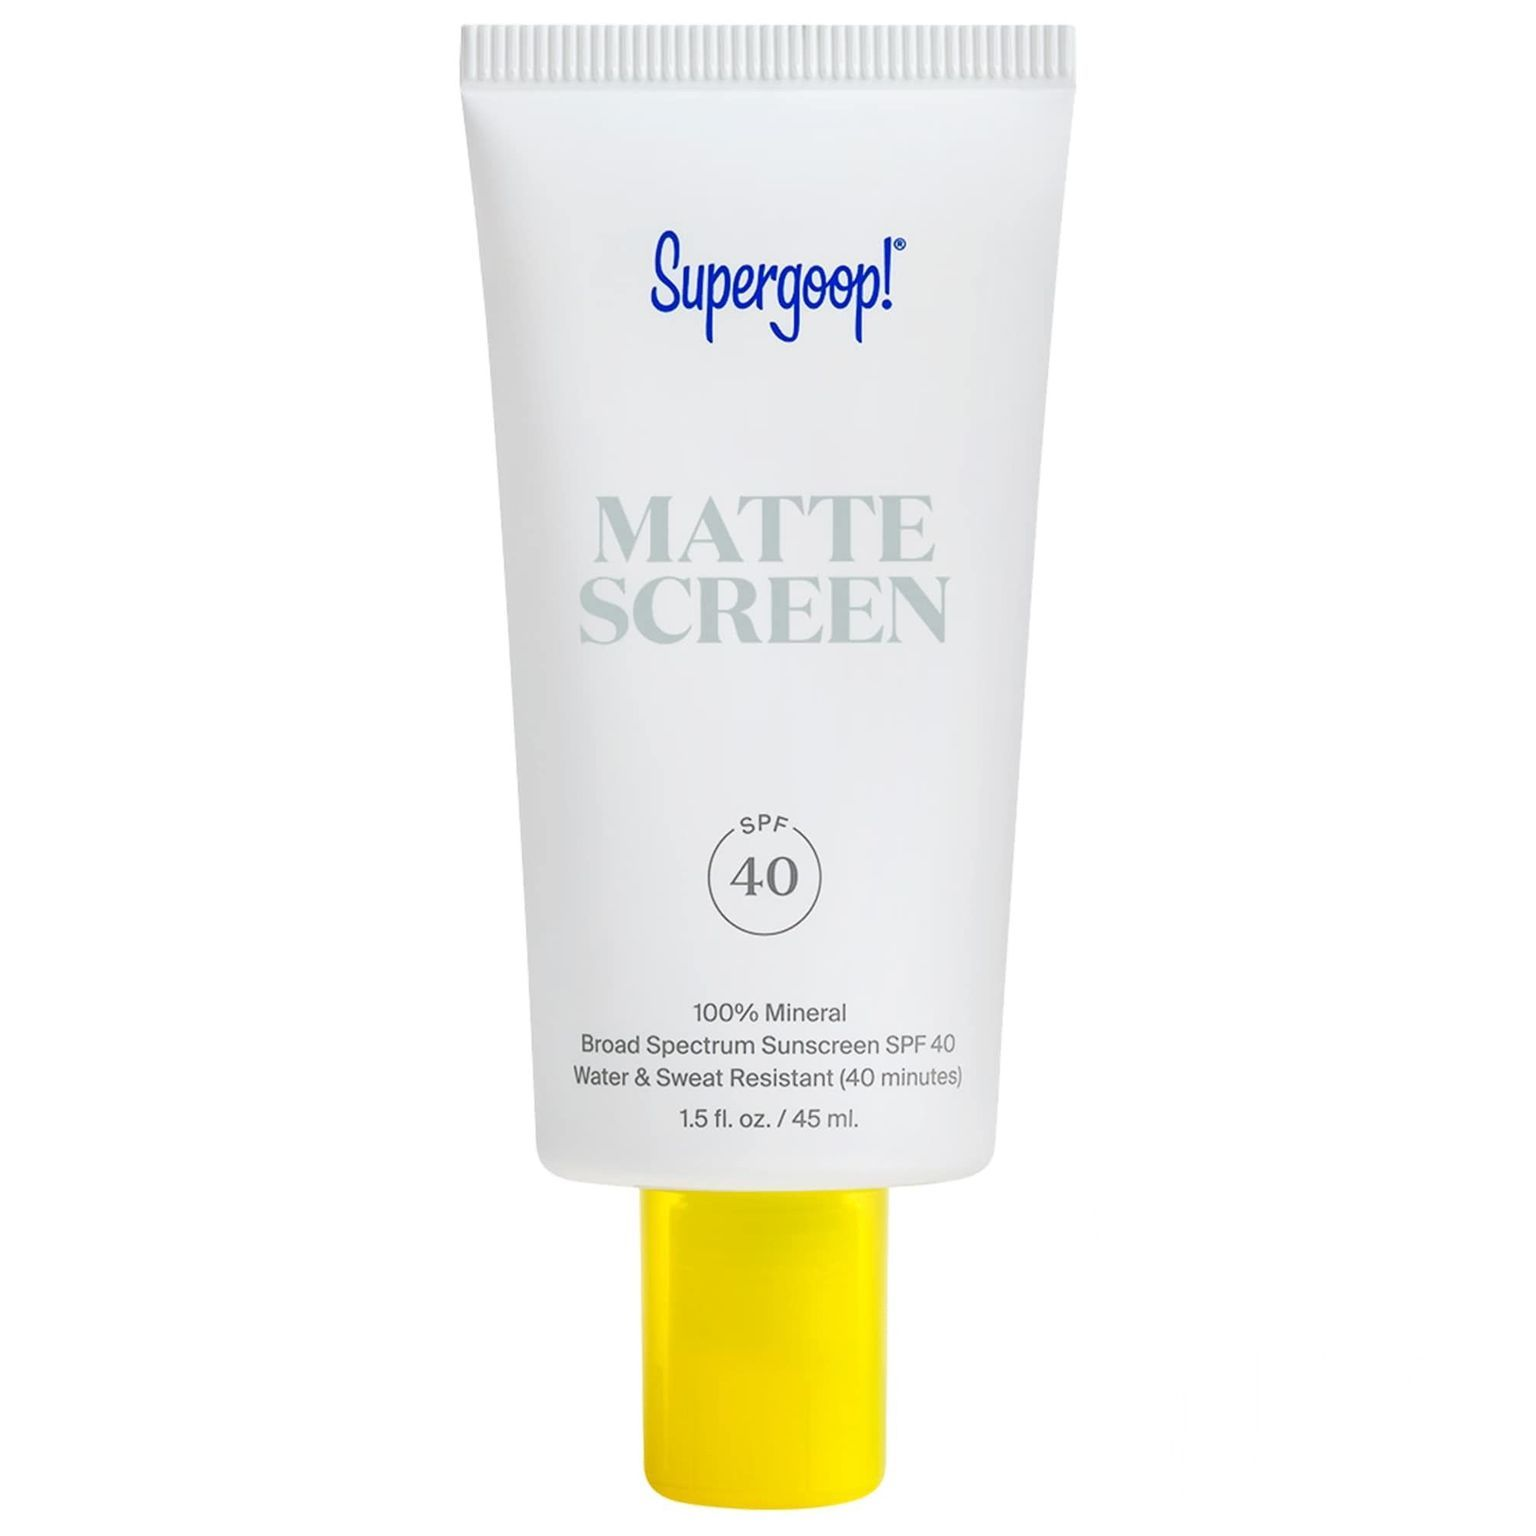 Mattescreen Sunscreen SPF 40